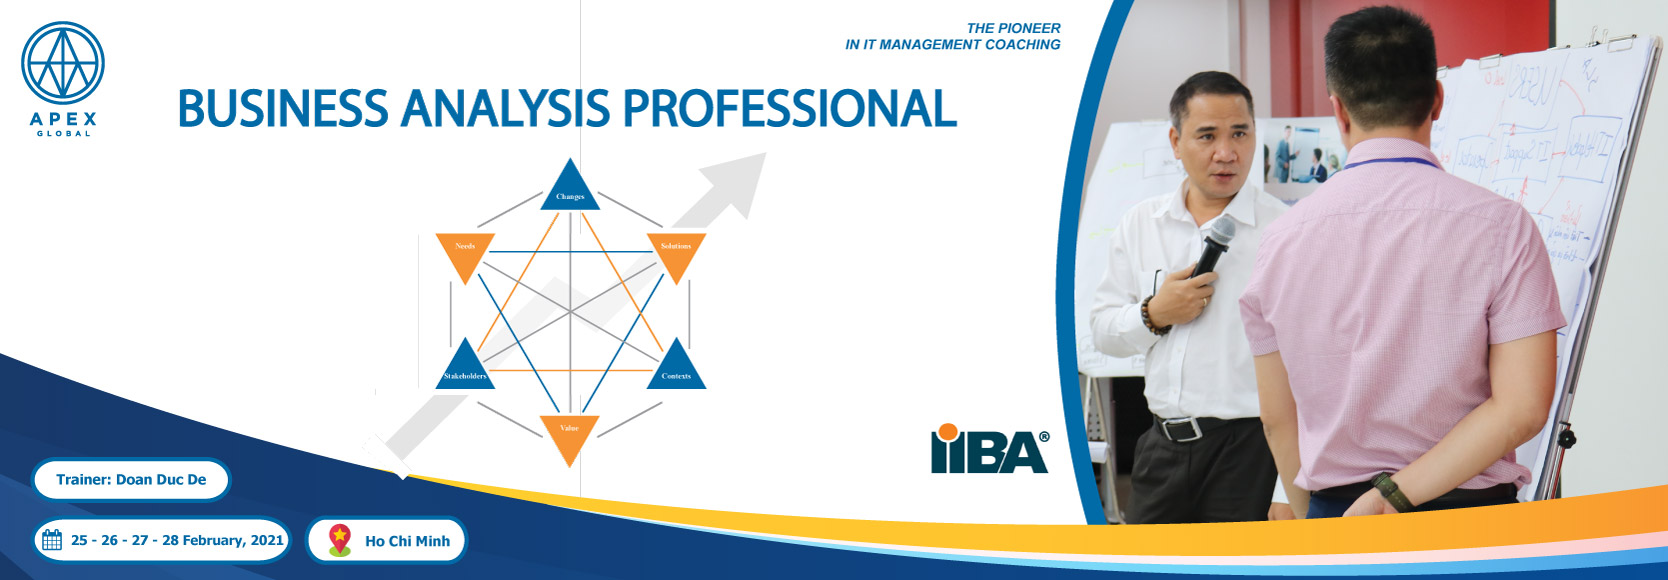 Business-Analysis-Professional-HCM